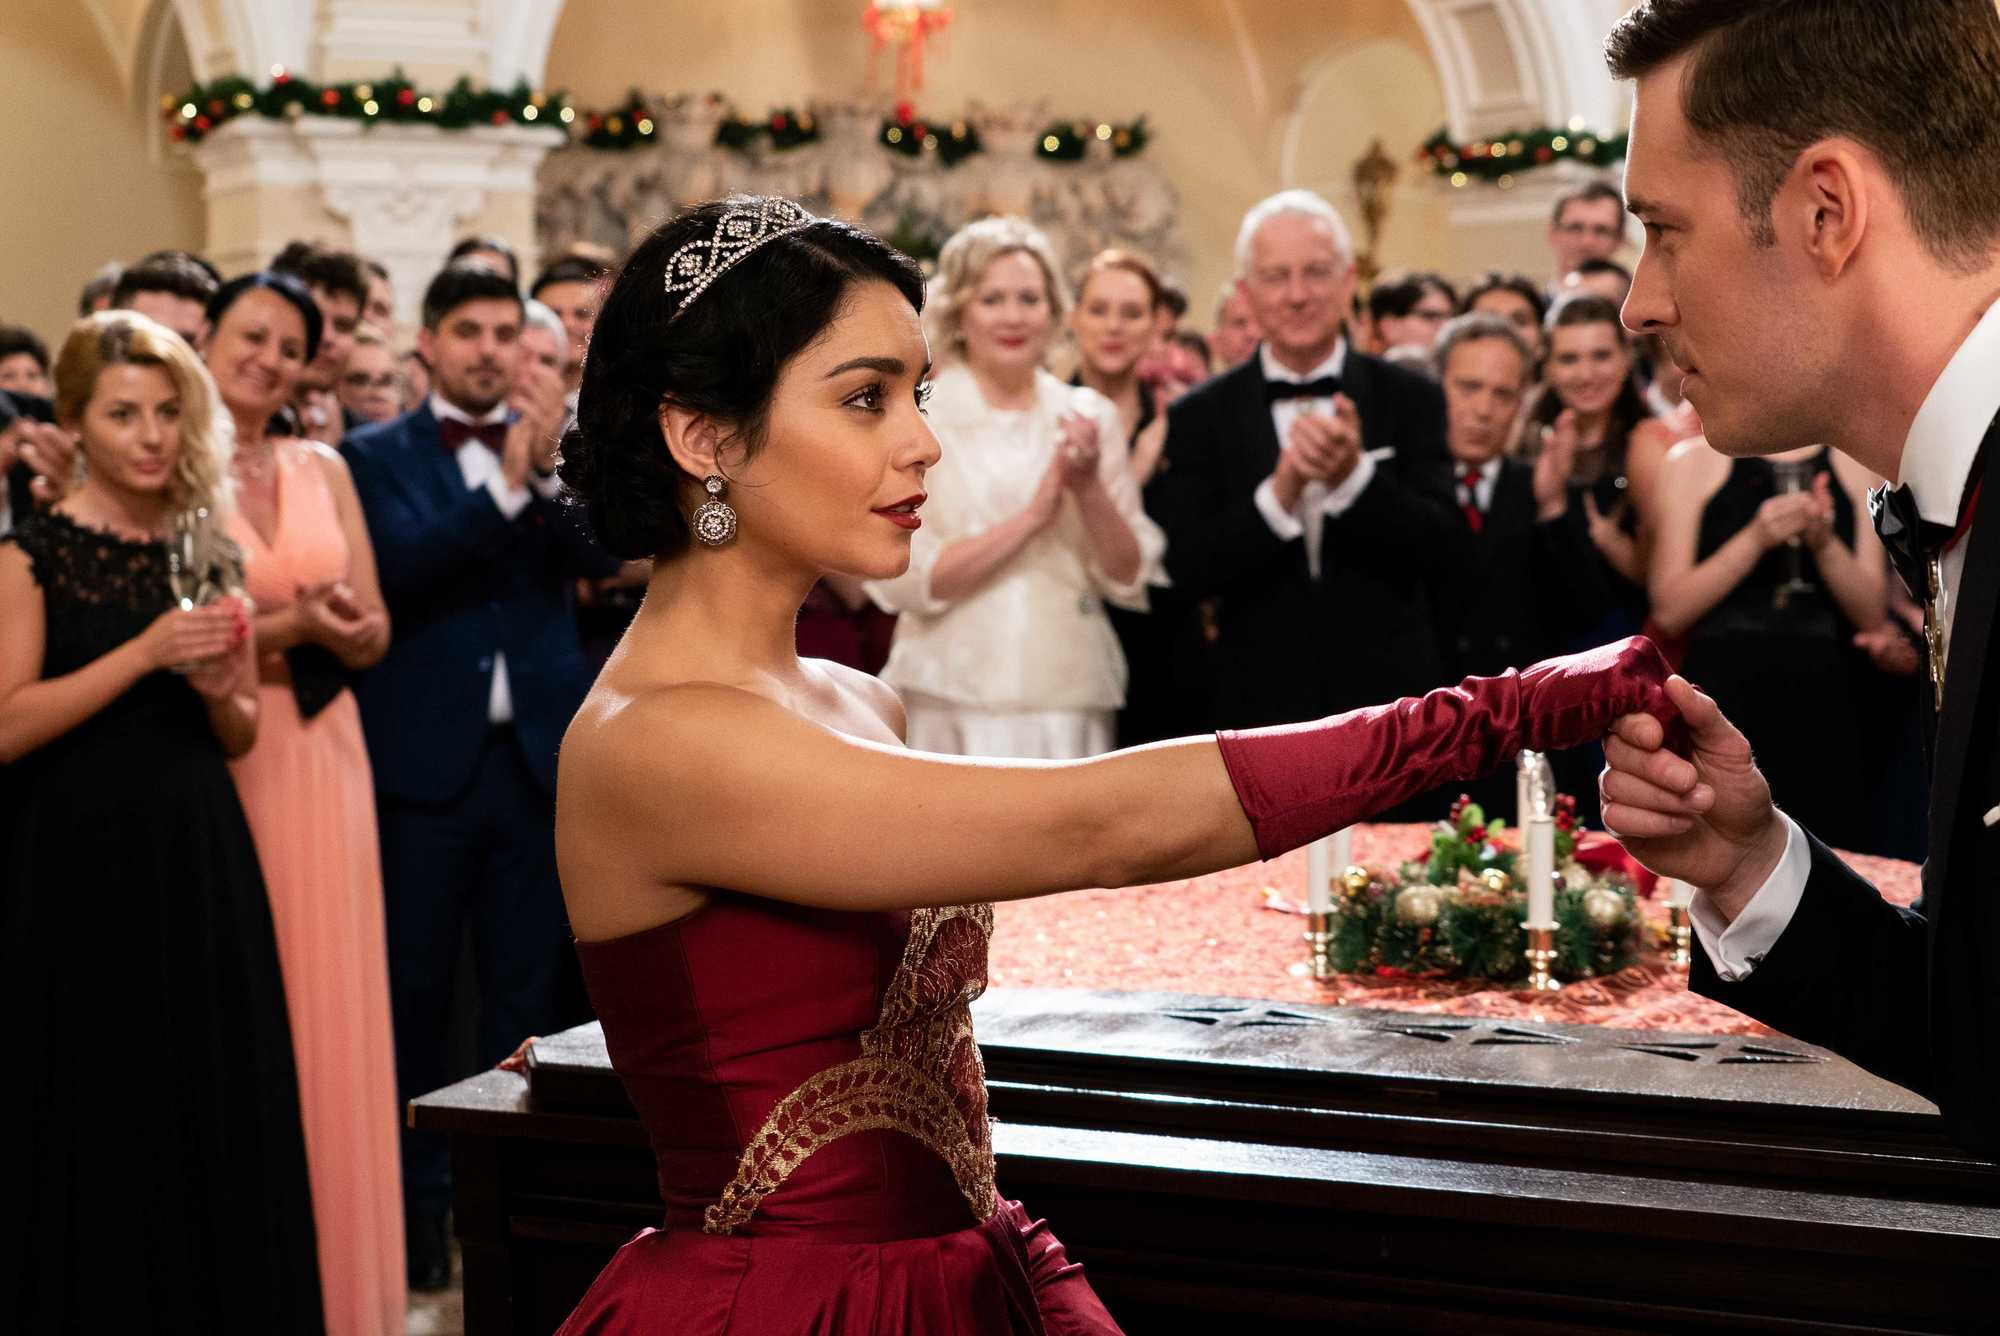 The Princess Switch: Vanessa Hudgens as Stacey De Novo on set, wearing a red gown with her black hair styled into a low sleek bun with a tiara, surrounded by people